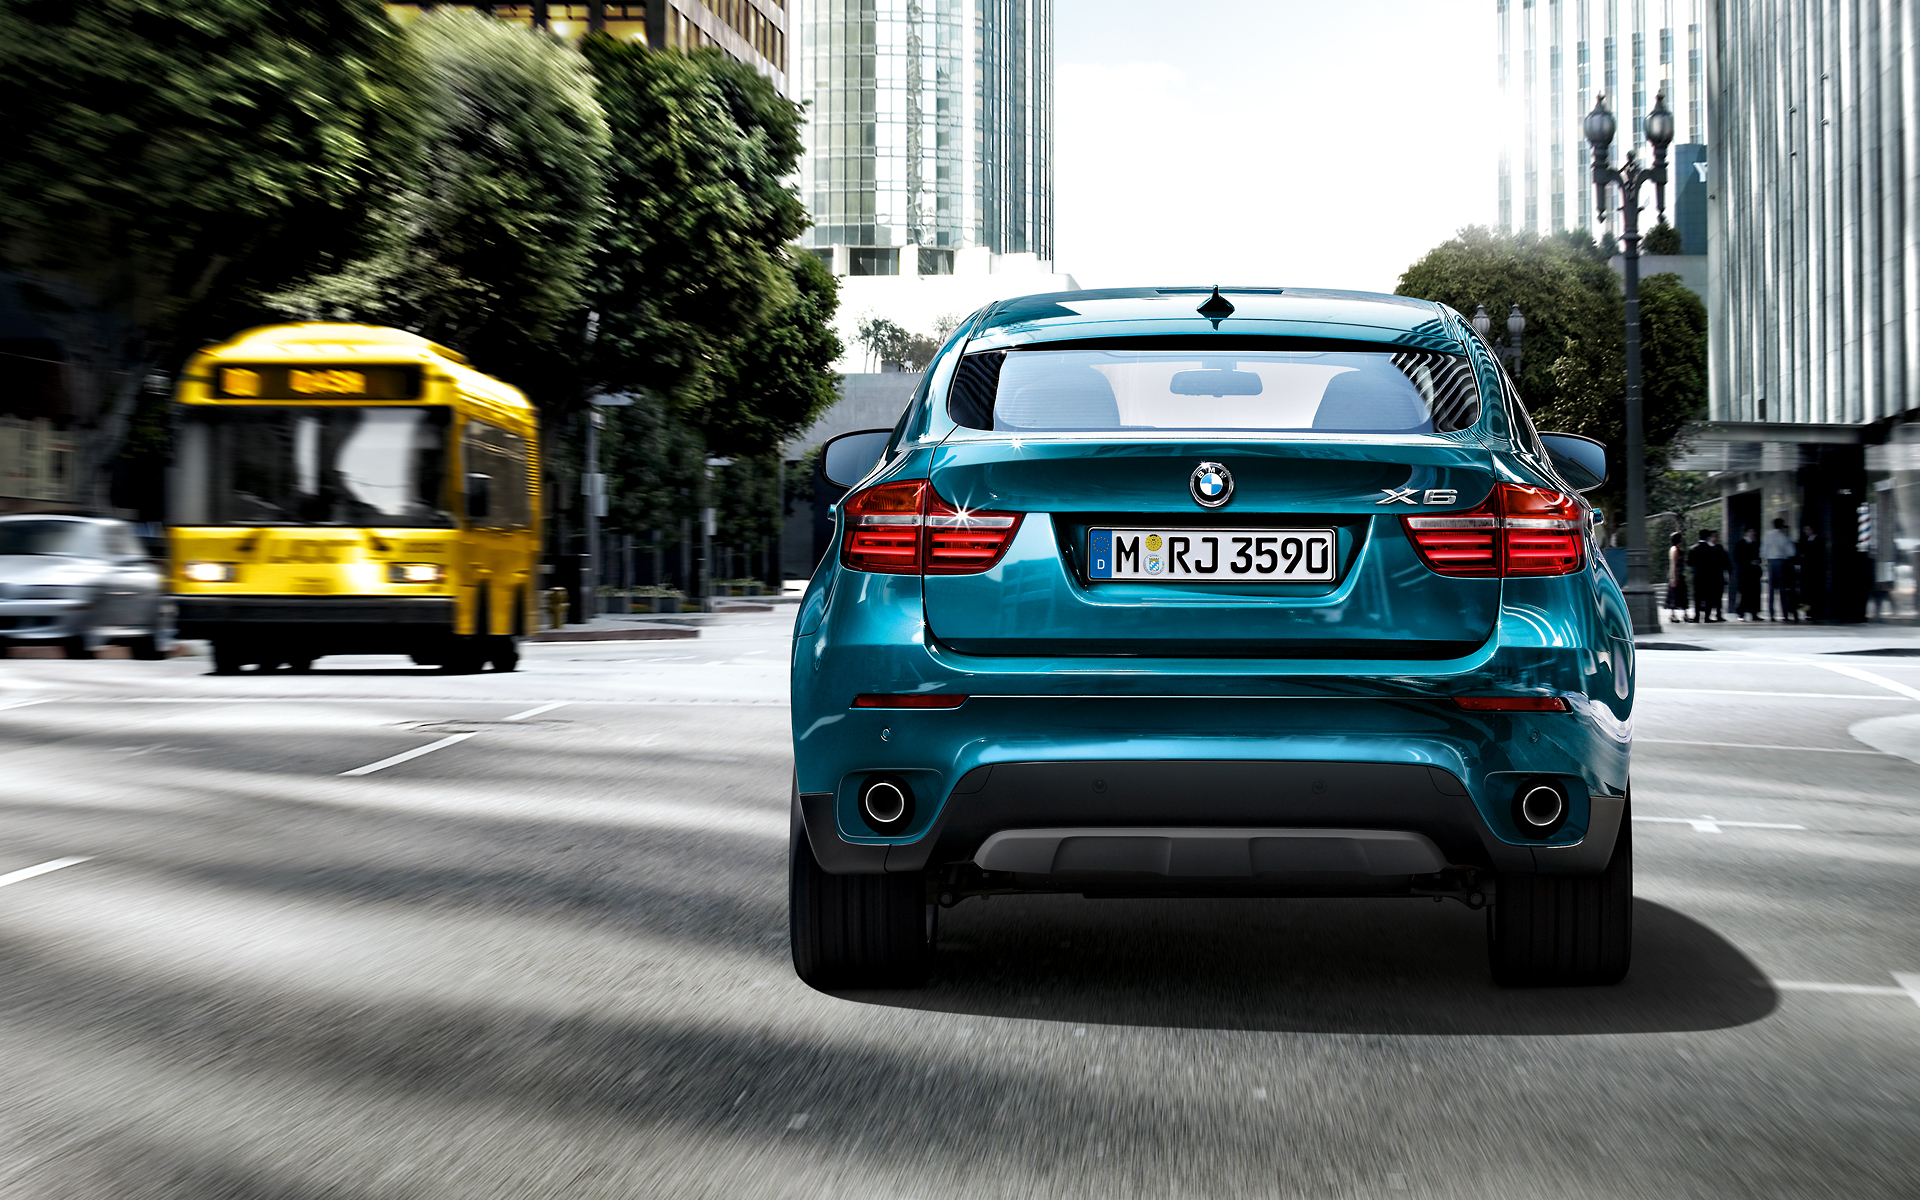 1920x1200 - BMW X6 Wallpapers 20